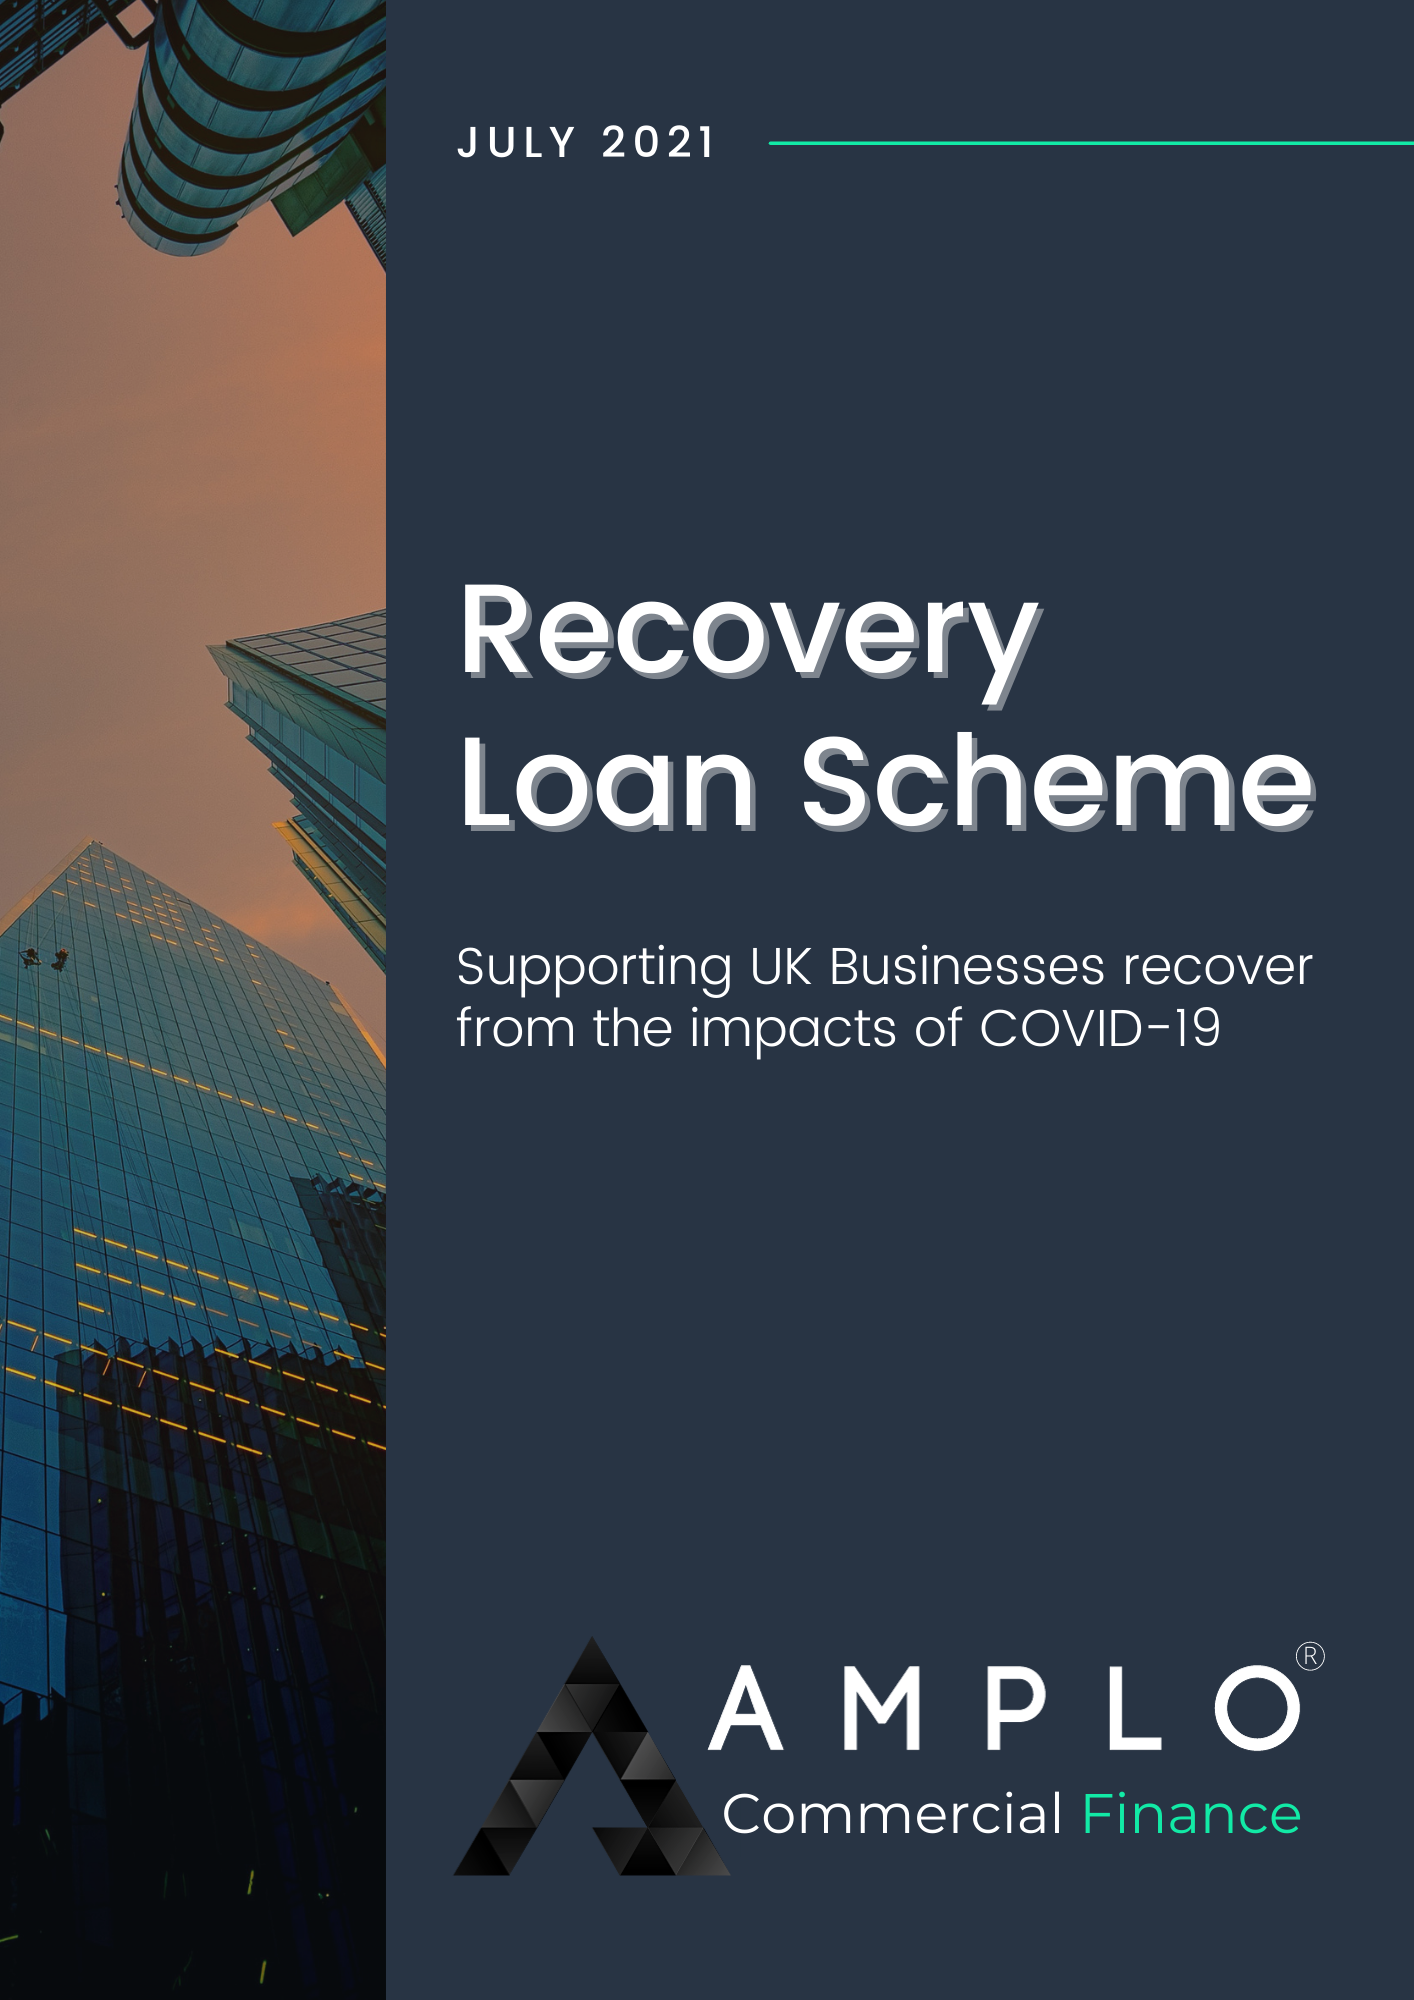 Recovery Loan Scheme - Everything You Need To Know